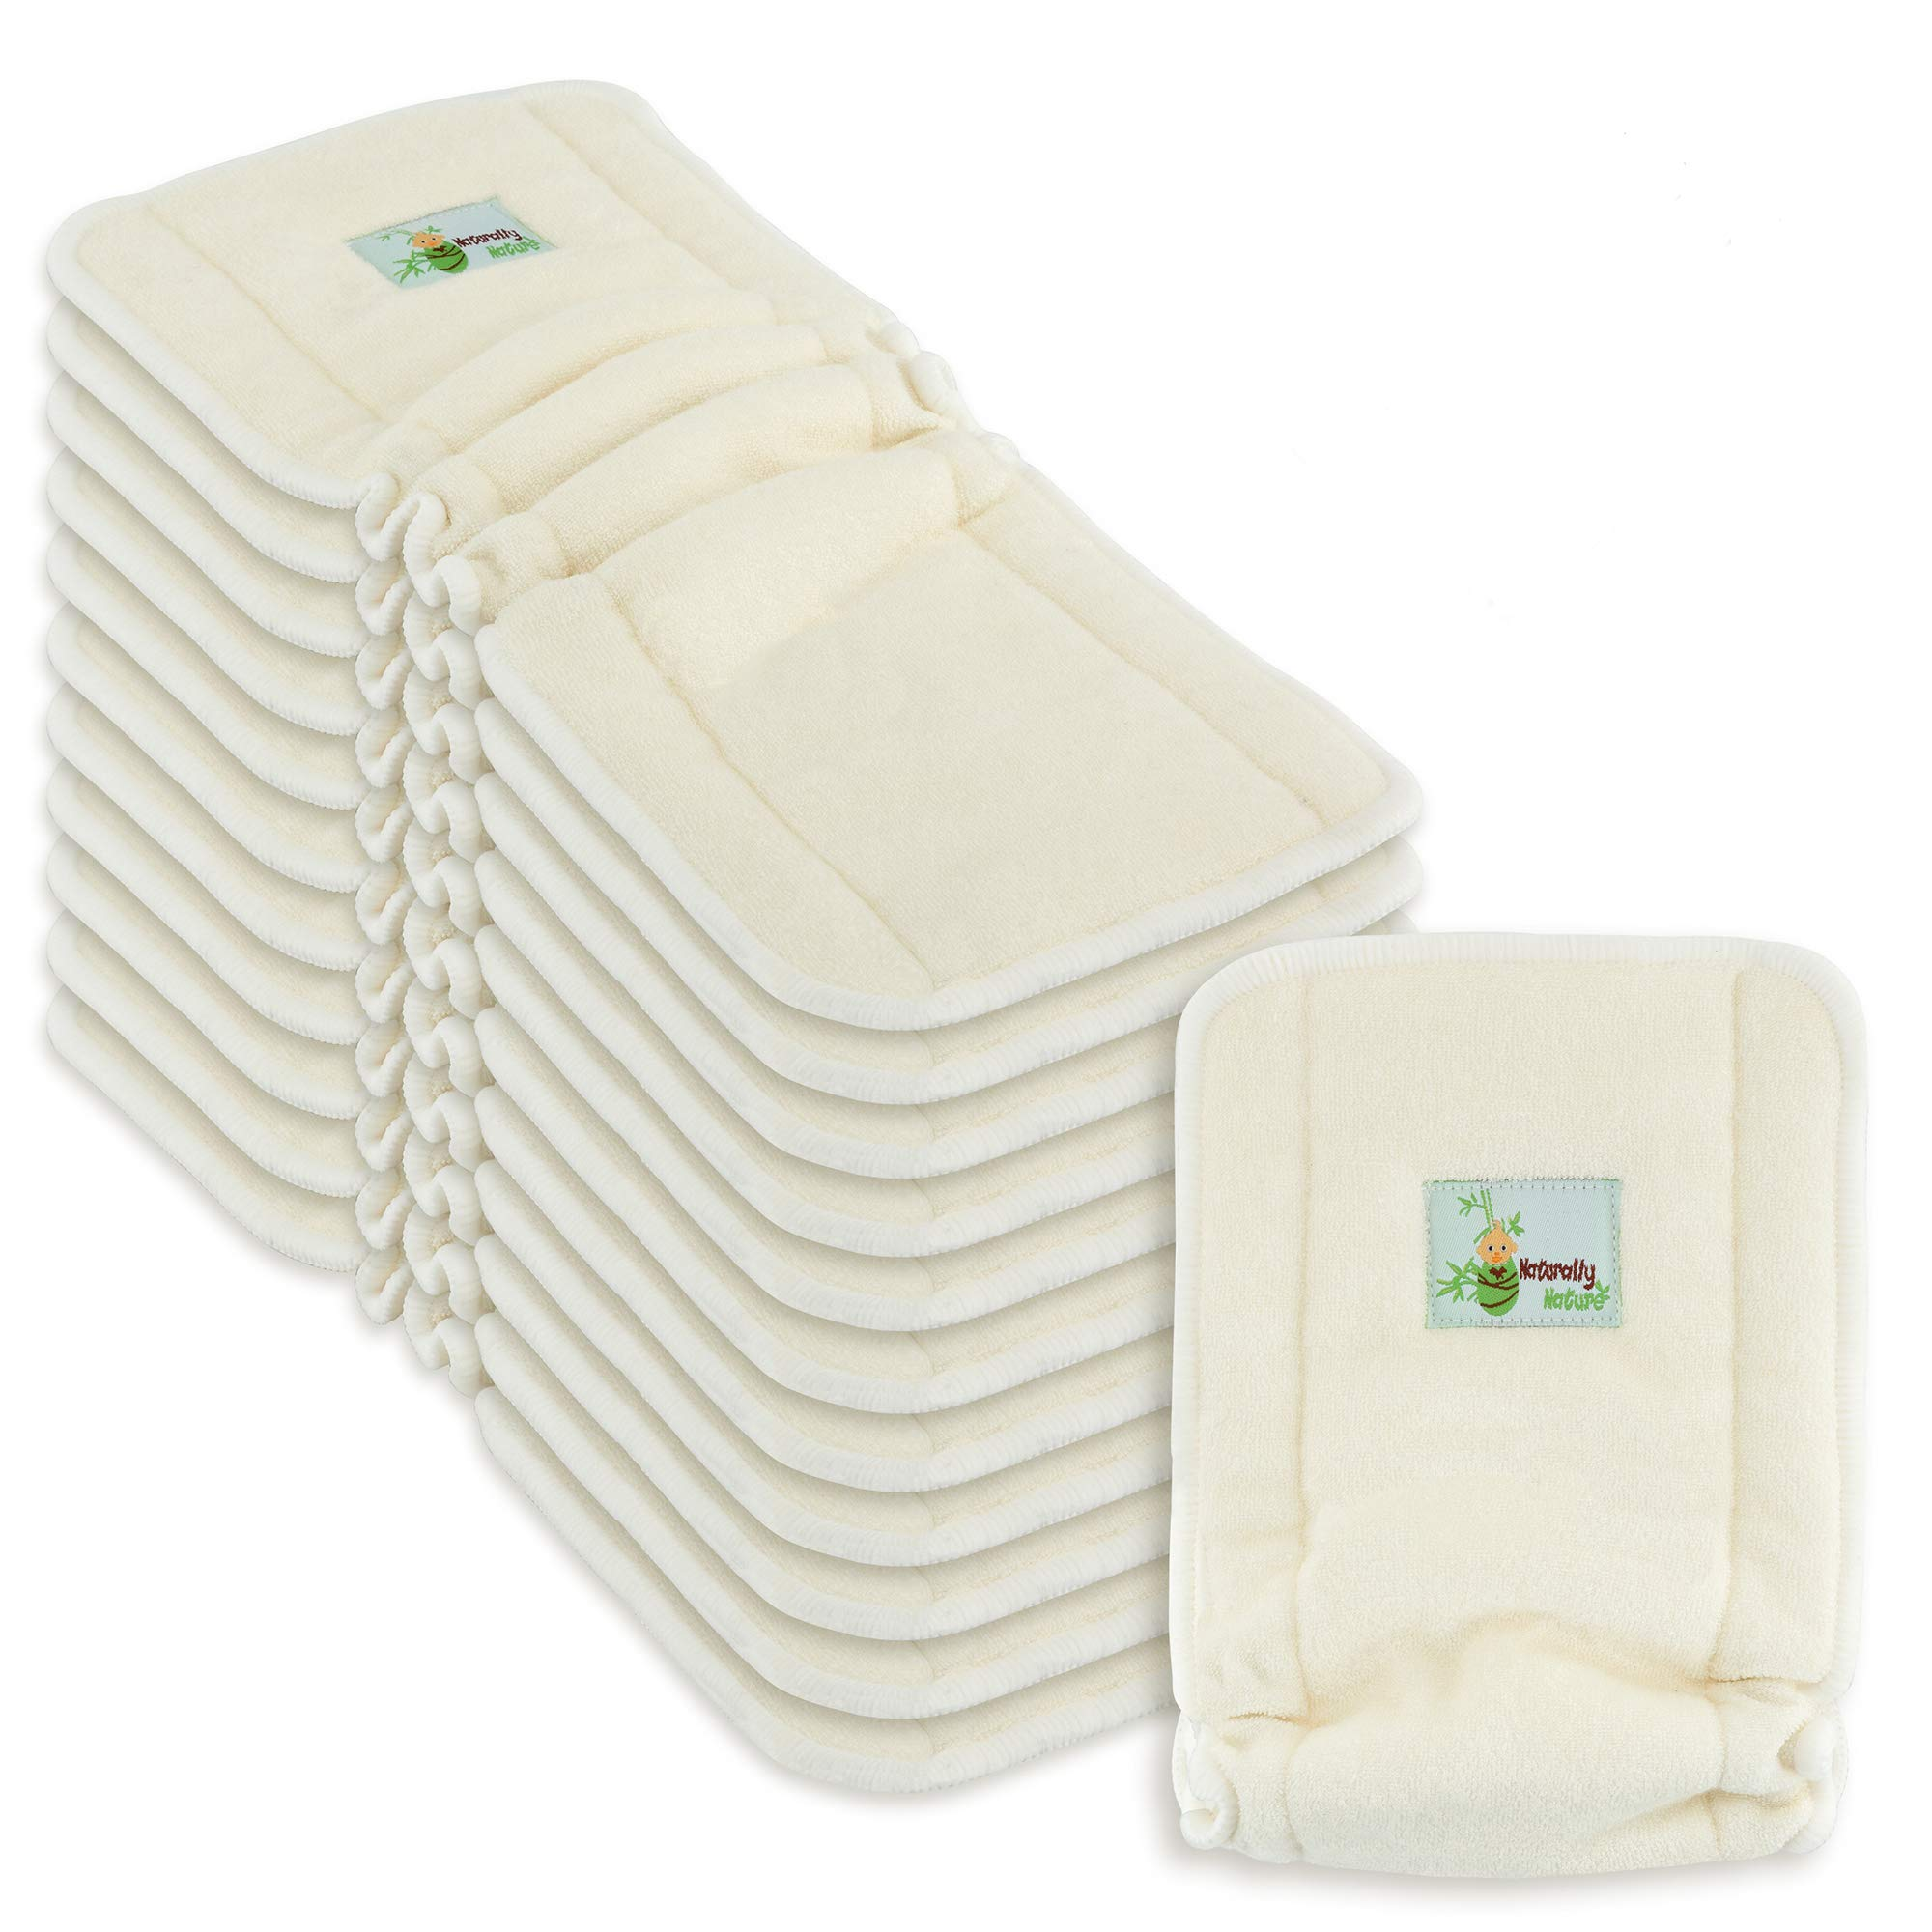 Naturally Natures 4 Layer Cloth Diaper - Inserts - with Gussetts Bamboo Reusable Liners for Cloth Diapers (Pack of 12)